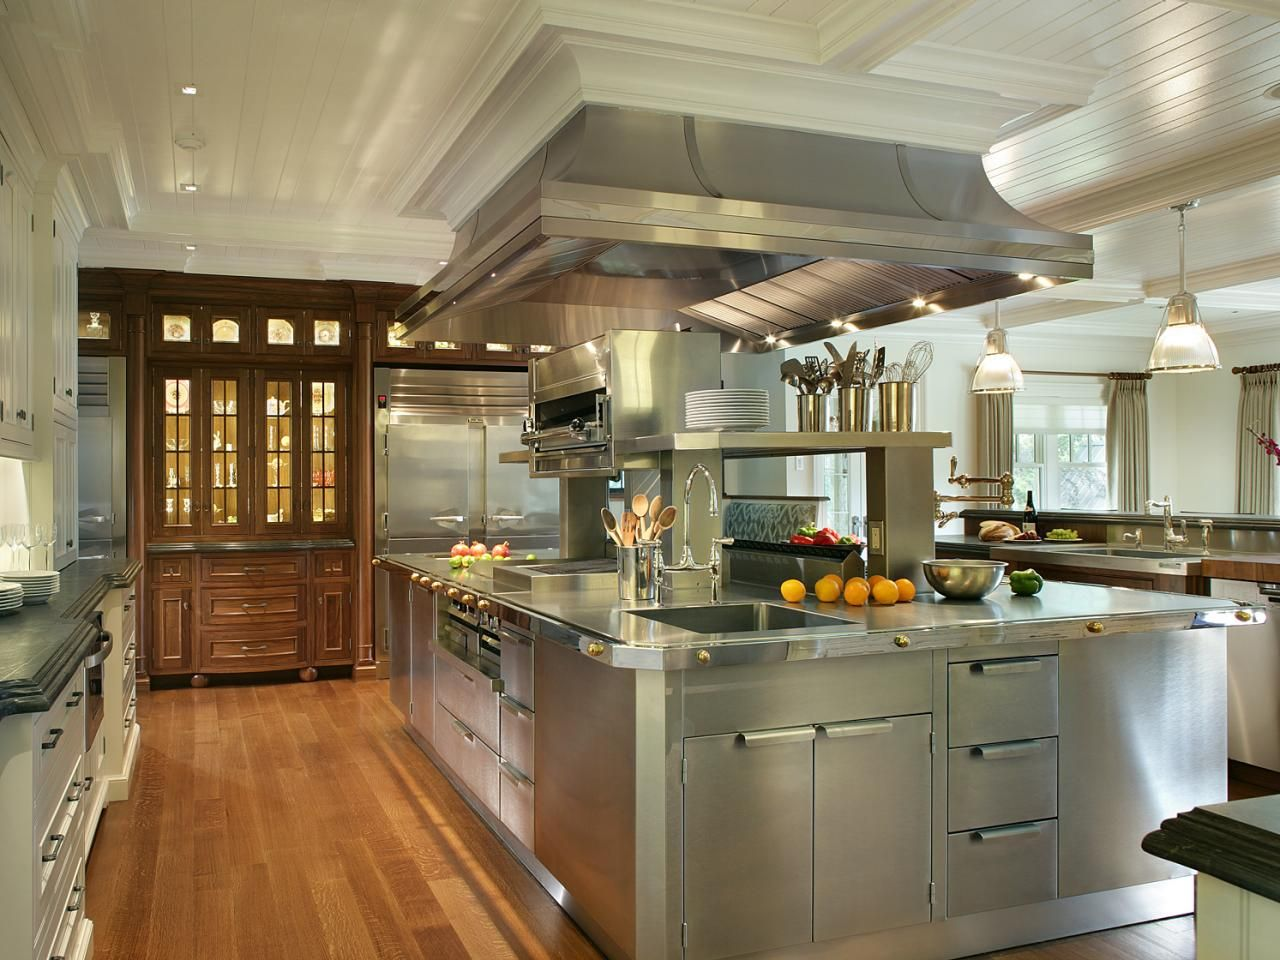 Modern kitchens kitchen ideas kitchen islands dream kitchens - A Chef S Dream Kitchen Dream Kitchensmodern